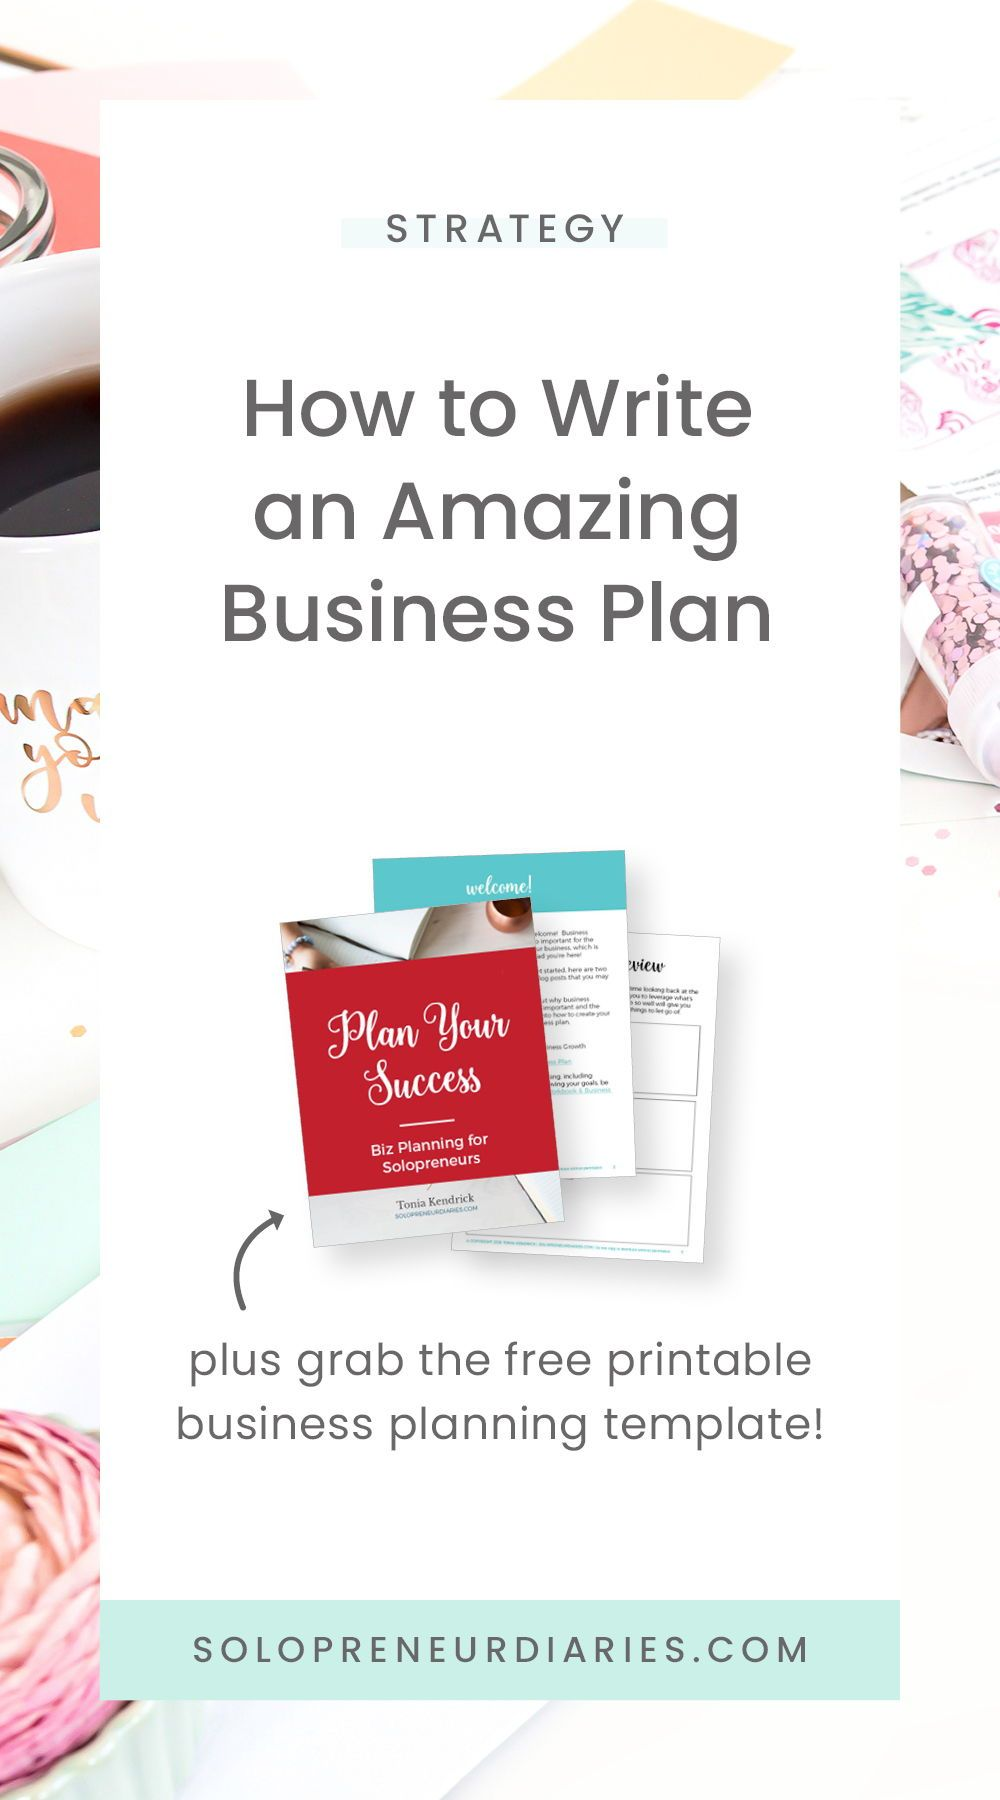 Why Business Planning Is Important for Your Business